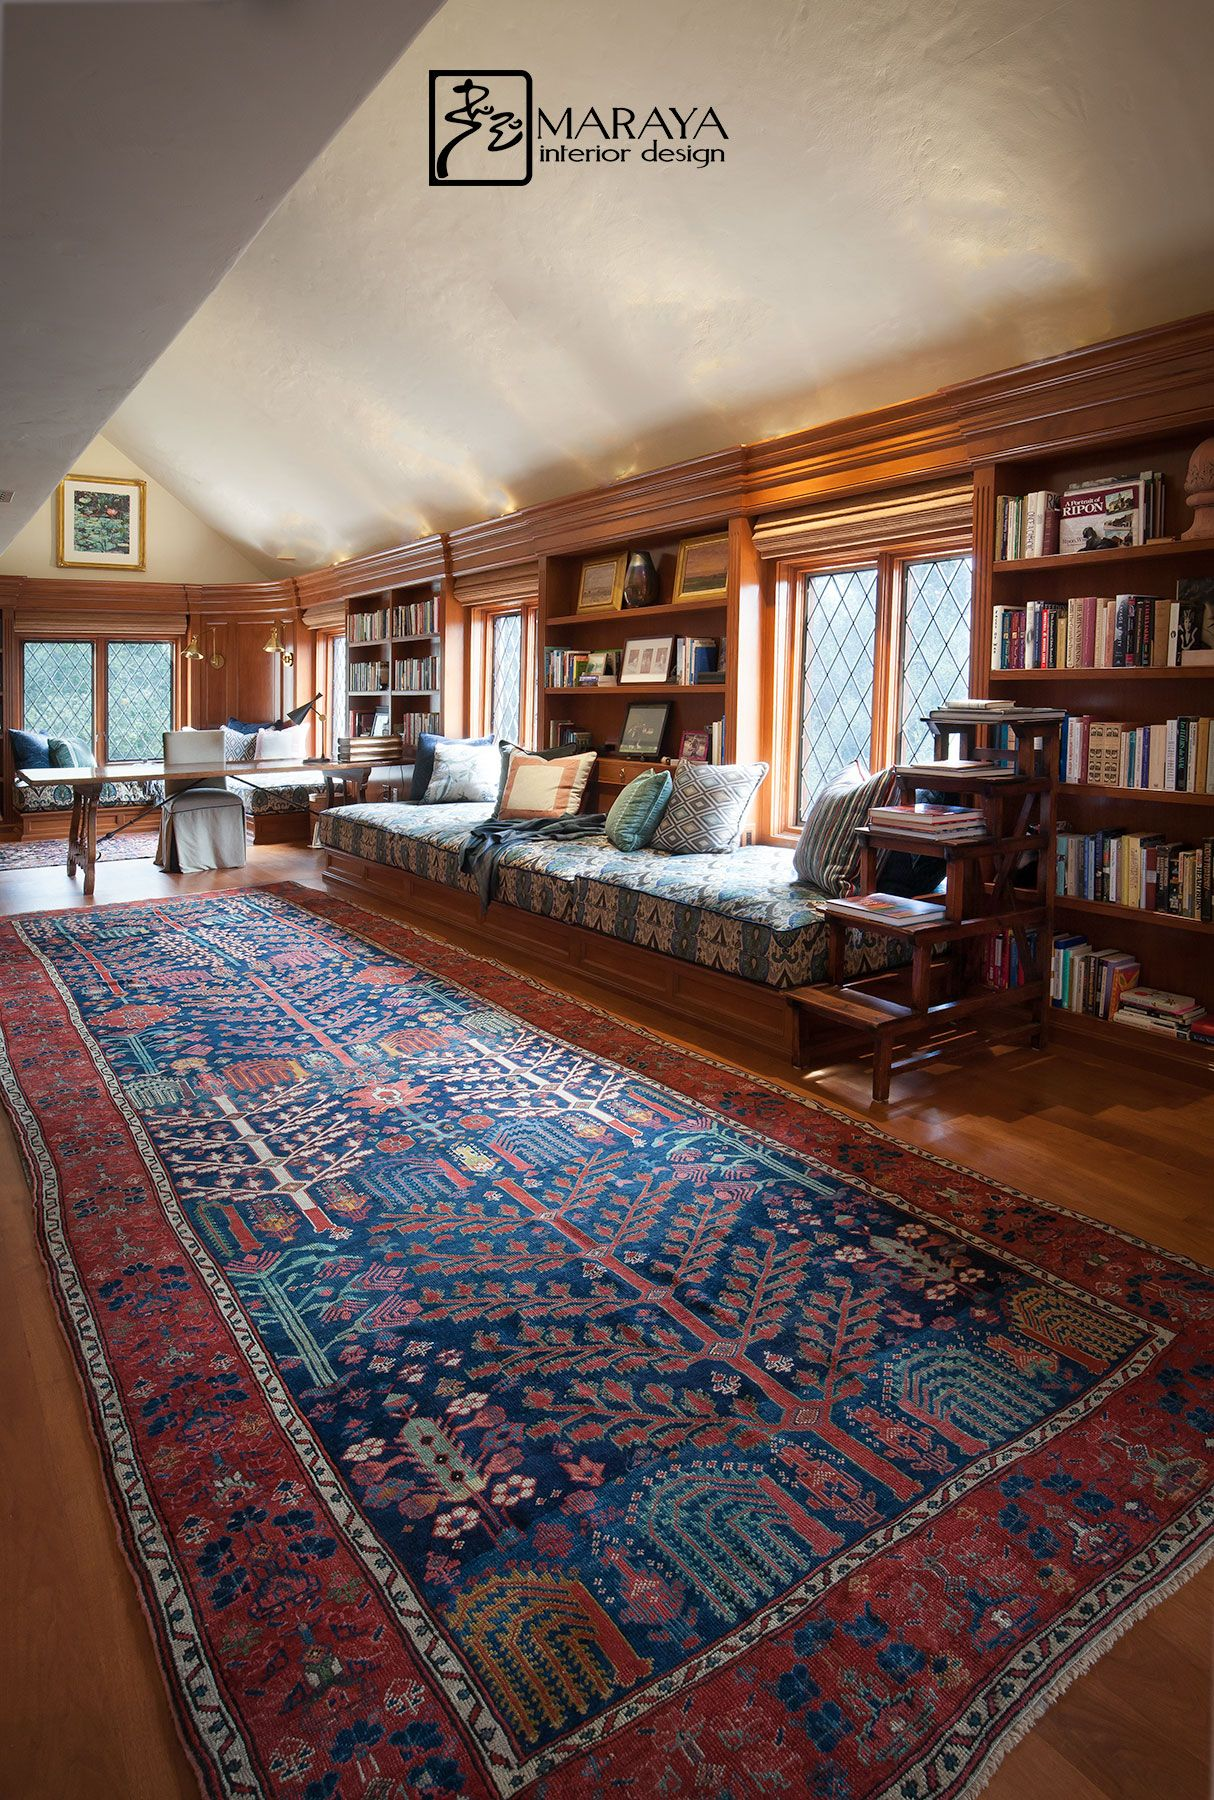 Old Wood Paneled Room: Antique Red And Blue Rug, Paneled Walls In This Old